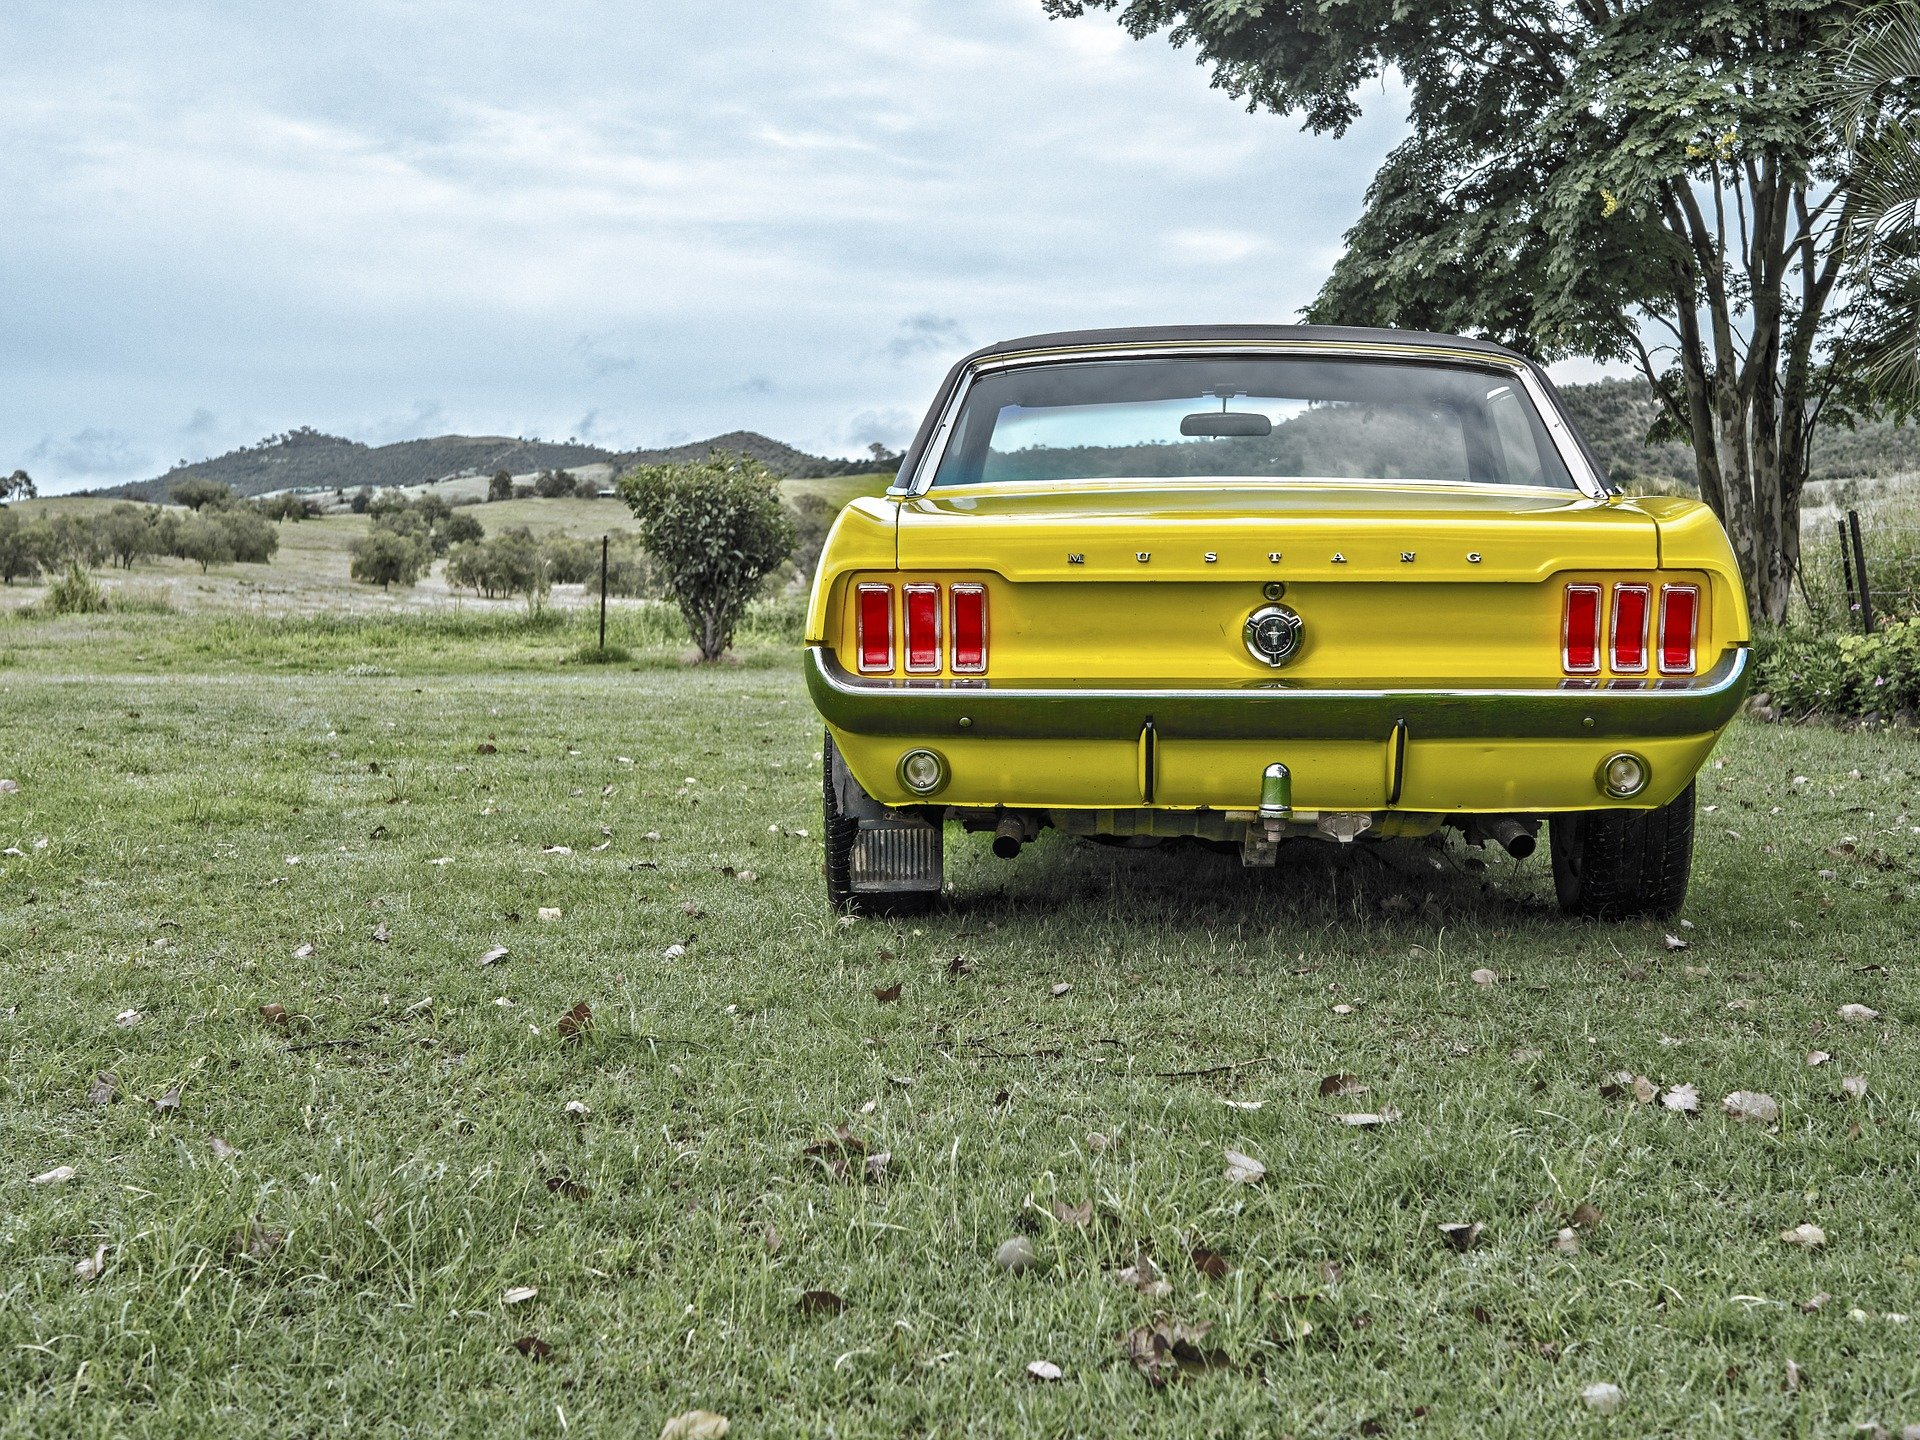 5 Tips for Seasonal and Long-Term Classic Car Storage - Life Storage ...